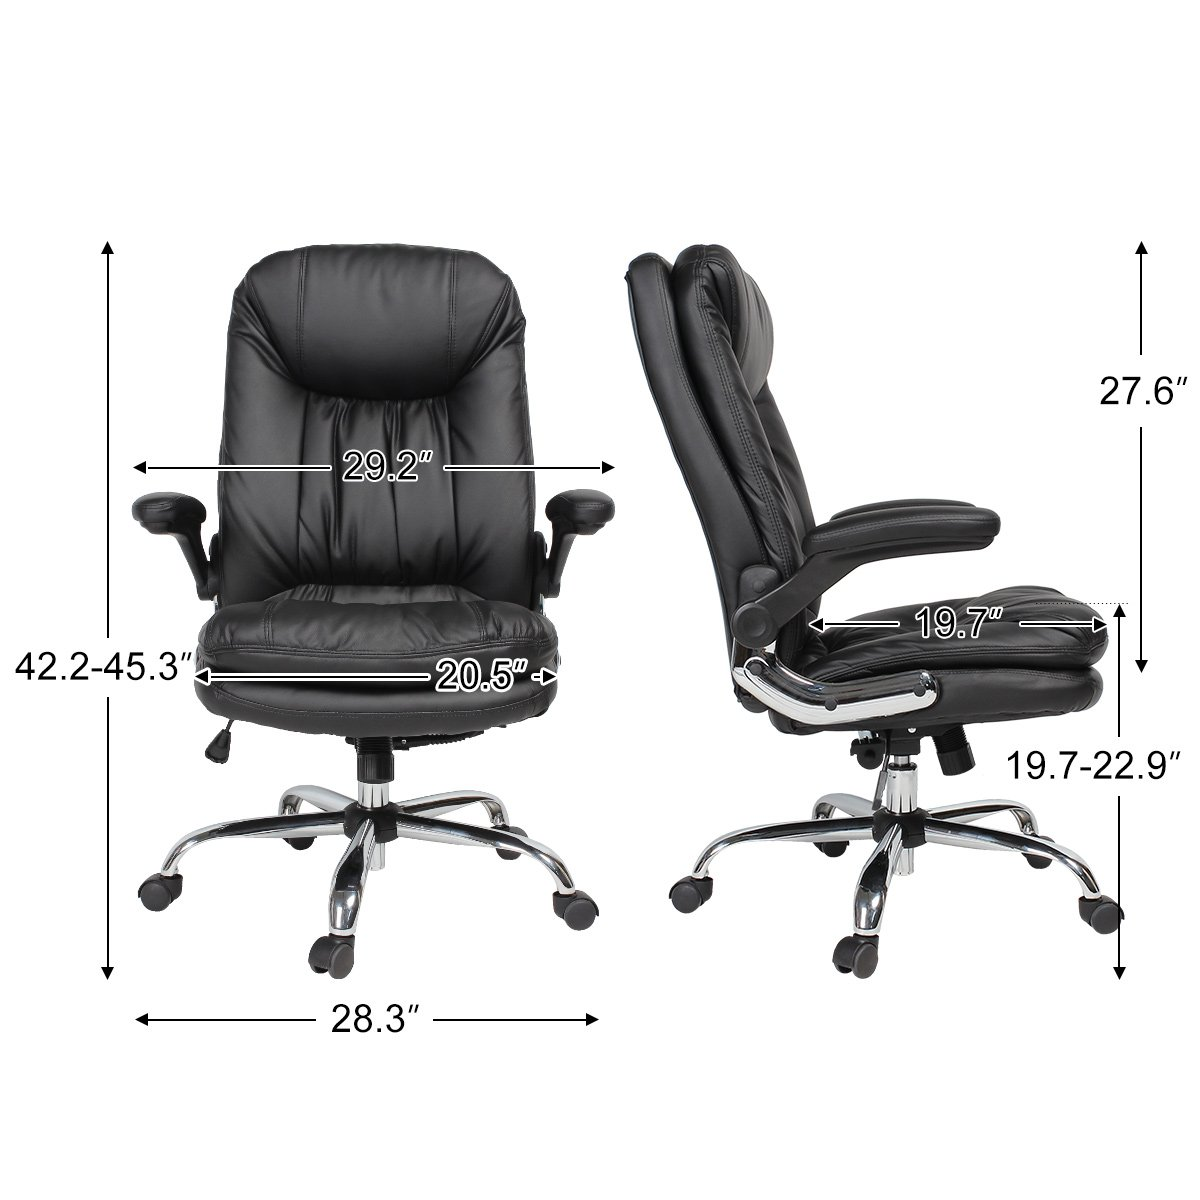 YAMASORO Ergonomic Home Office Chair with Flip-Up Arms and Comfy Headrest PU Leather High-Back Computer Desk Chair Big and Tall Capacity 330lbs Black by YAMASORO (Image #4)